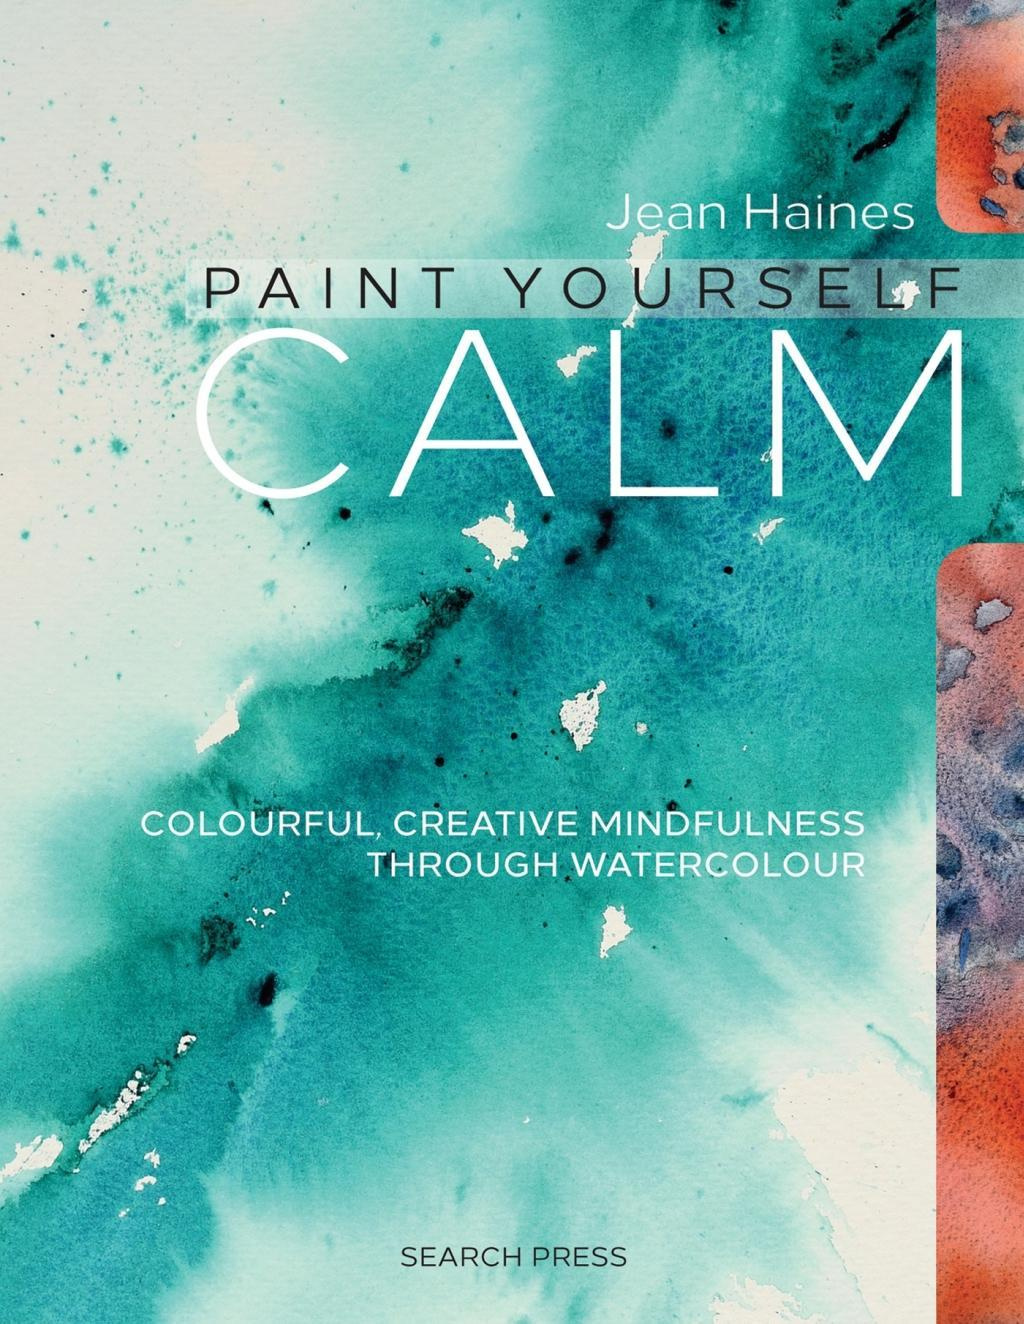 Paint Yourself Calm: Using Watercolour to Discover Your Creative Self